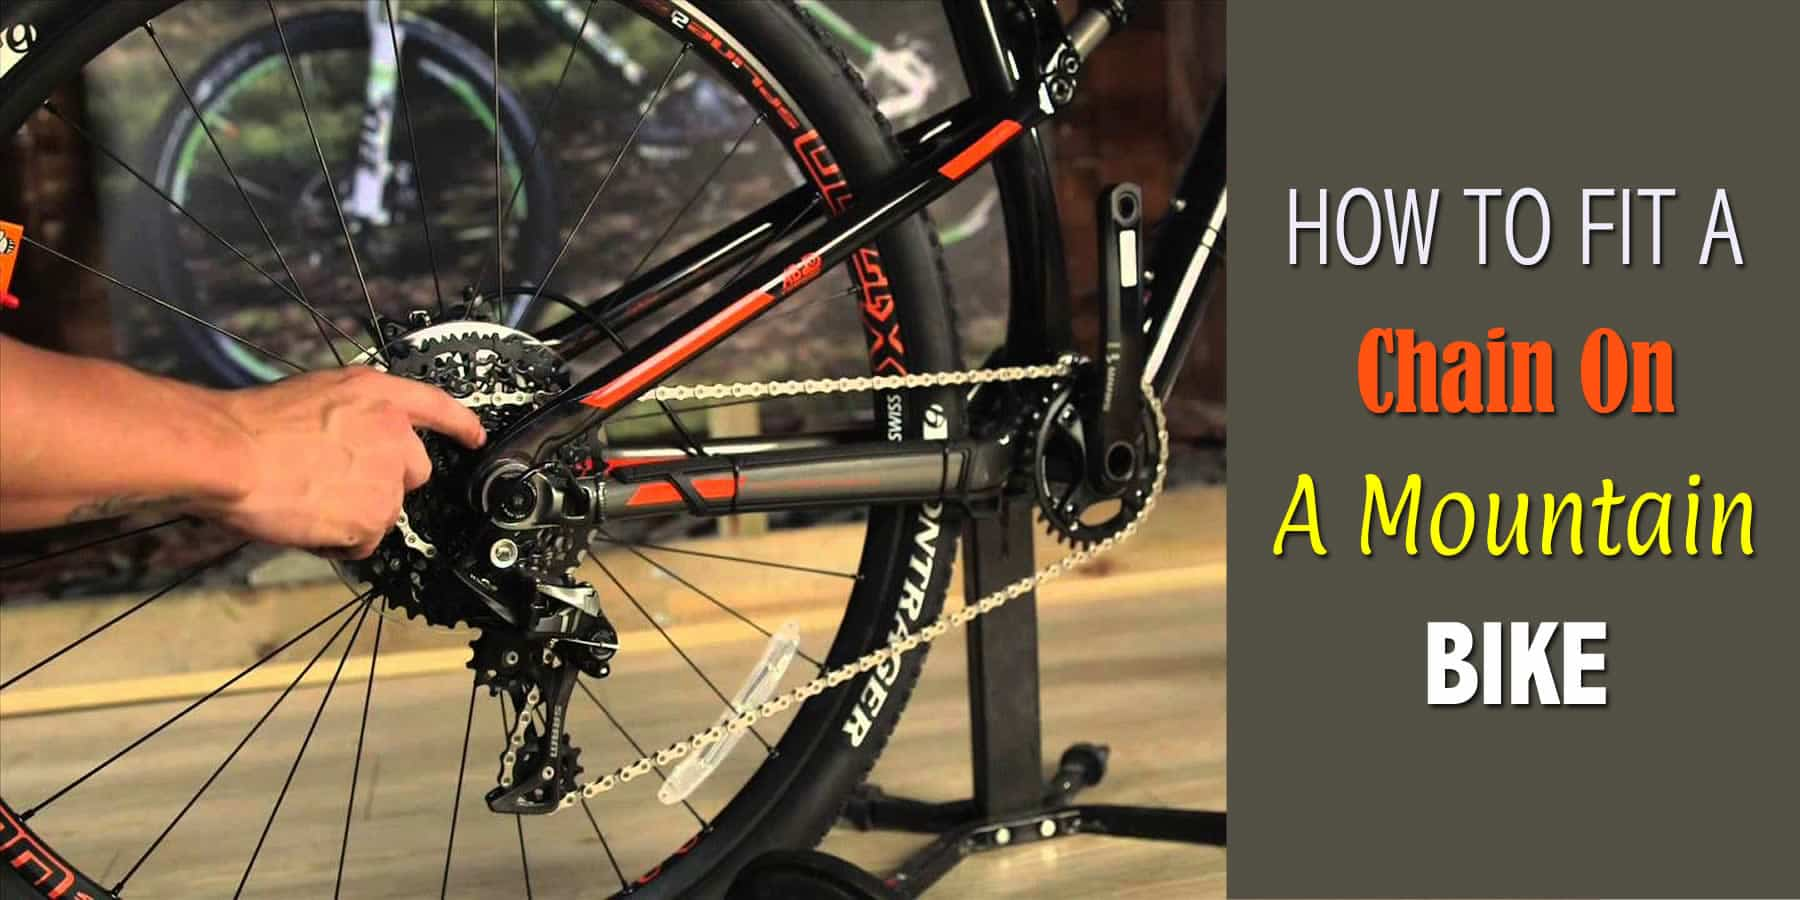 How To Fit A Chain On A Mountain Bike